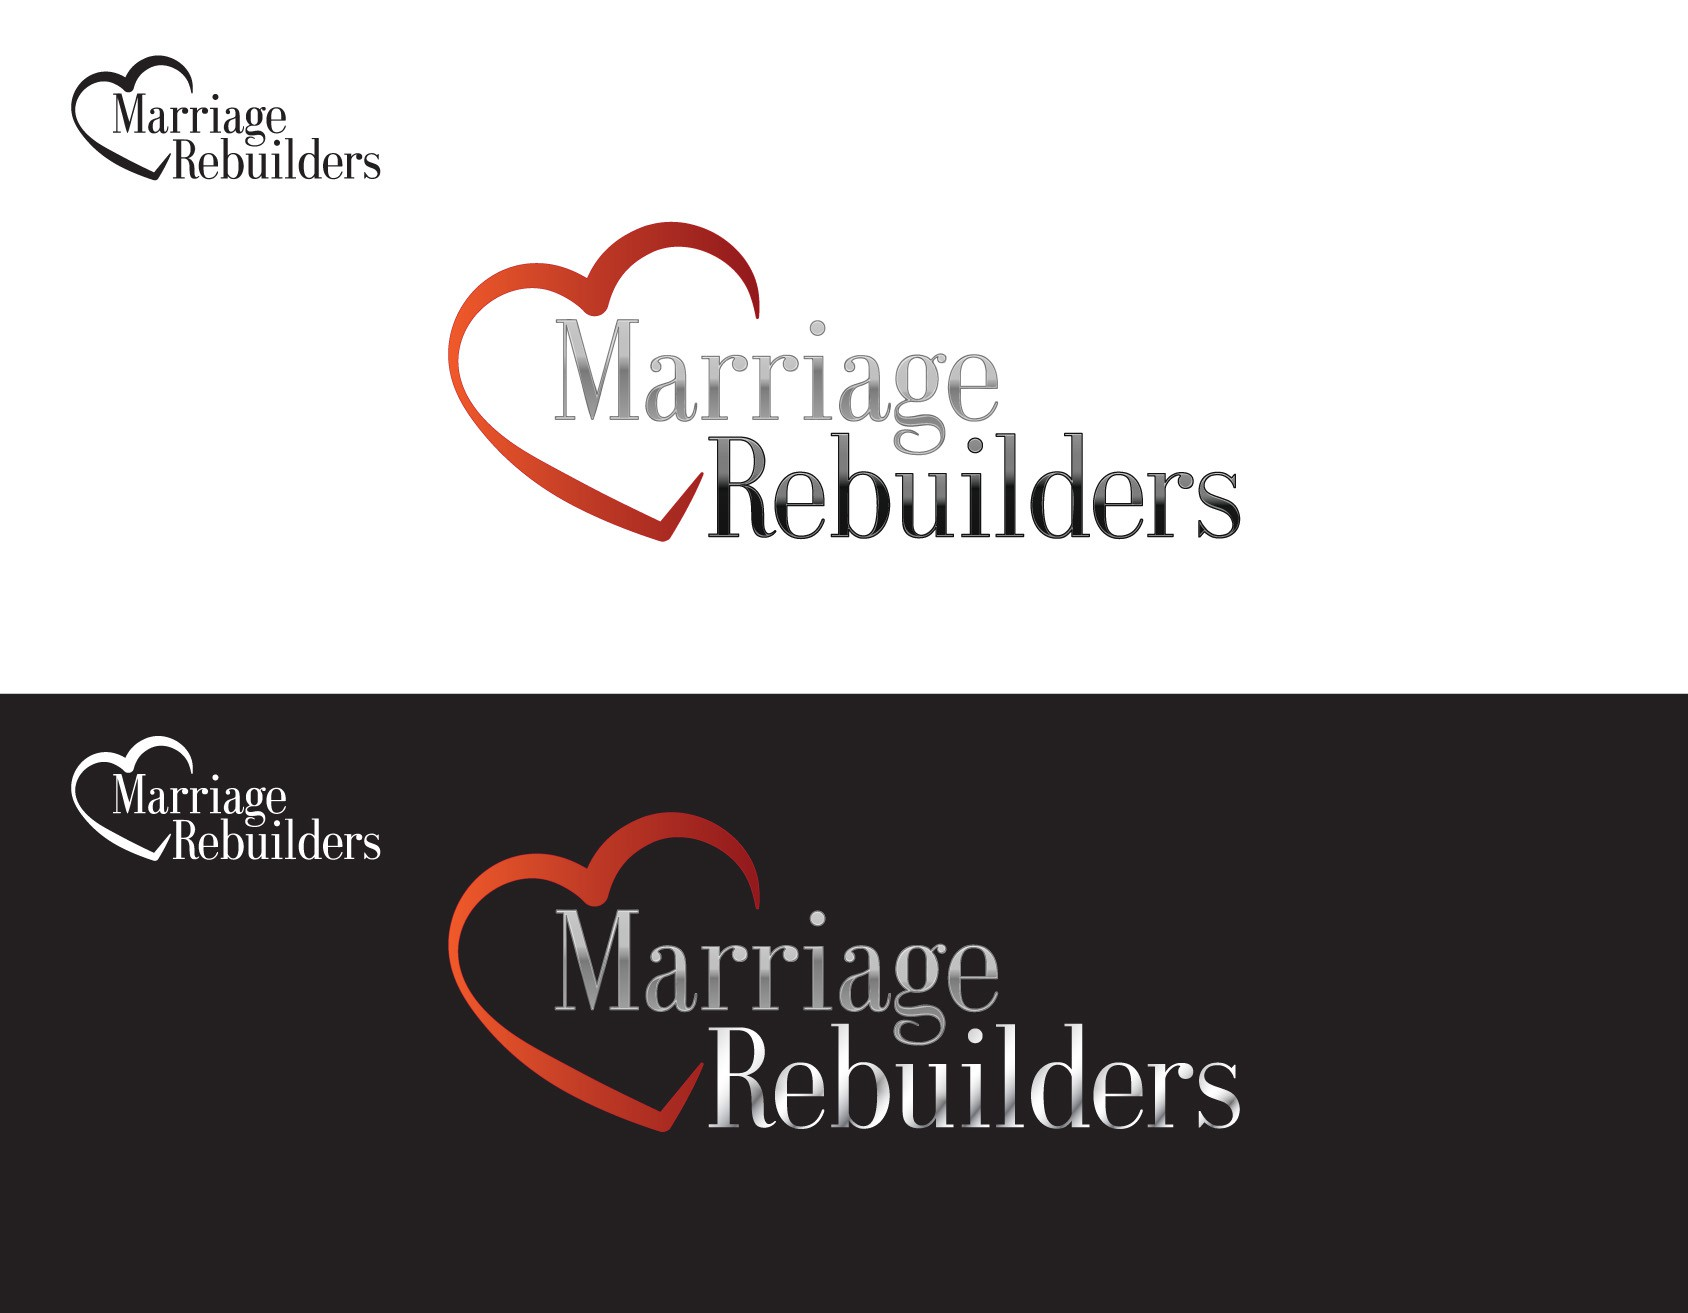 Help Marriage Rebuilders with a new logo